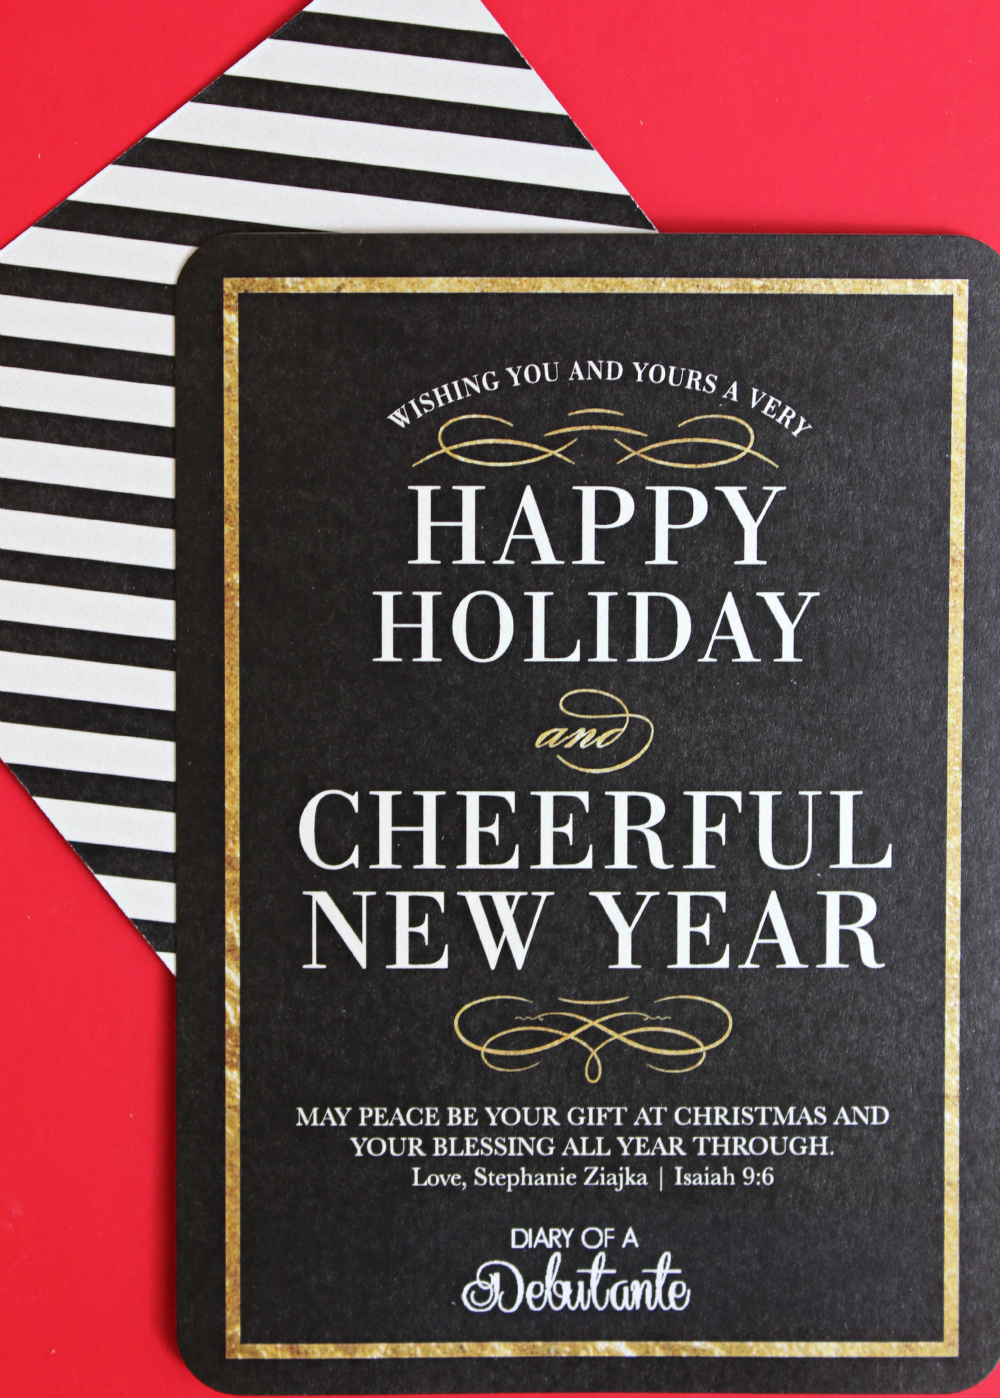 Business Holiday Cards And Personalized Gifts From Tiny Prints